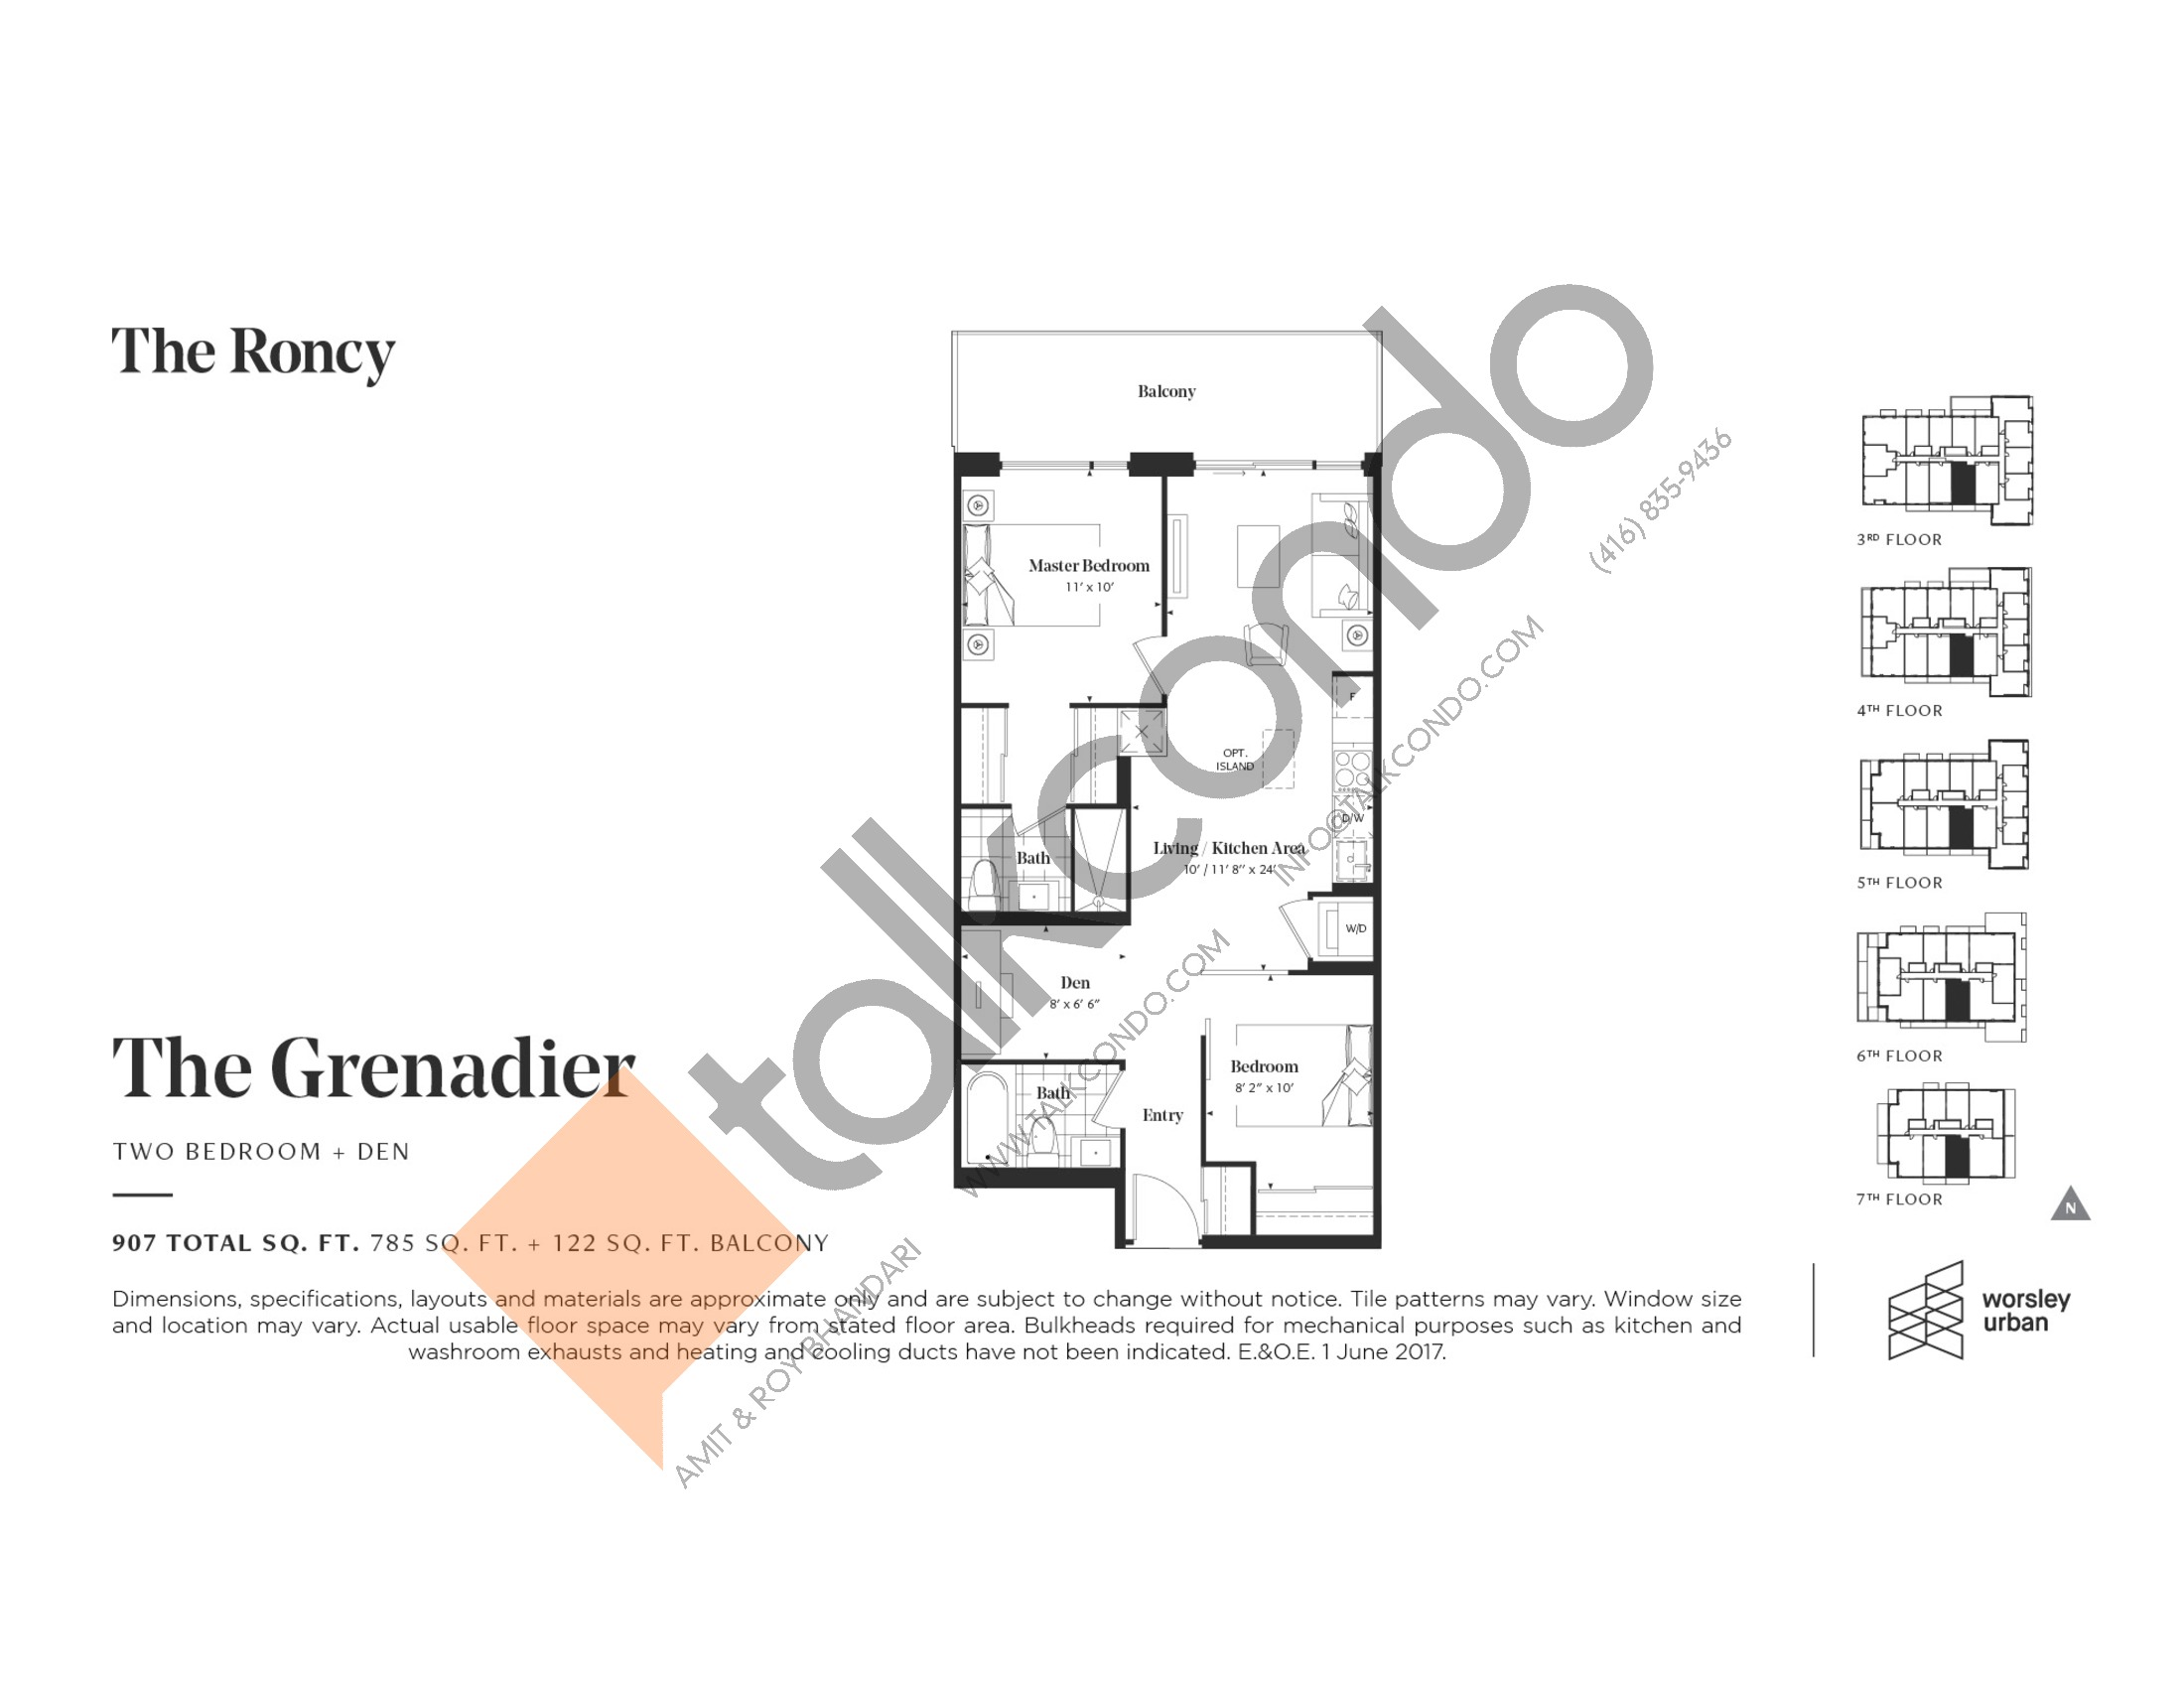 The Grenadier Floor Plan at The Roncy Condos - 785 sq.ft